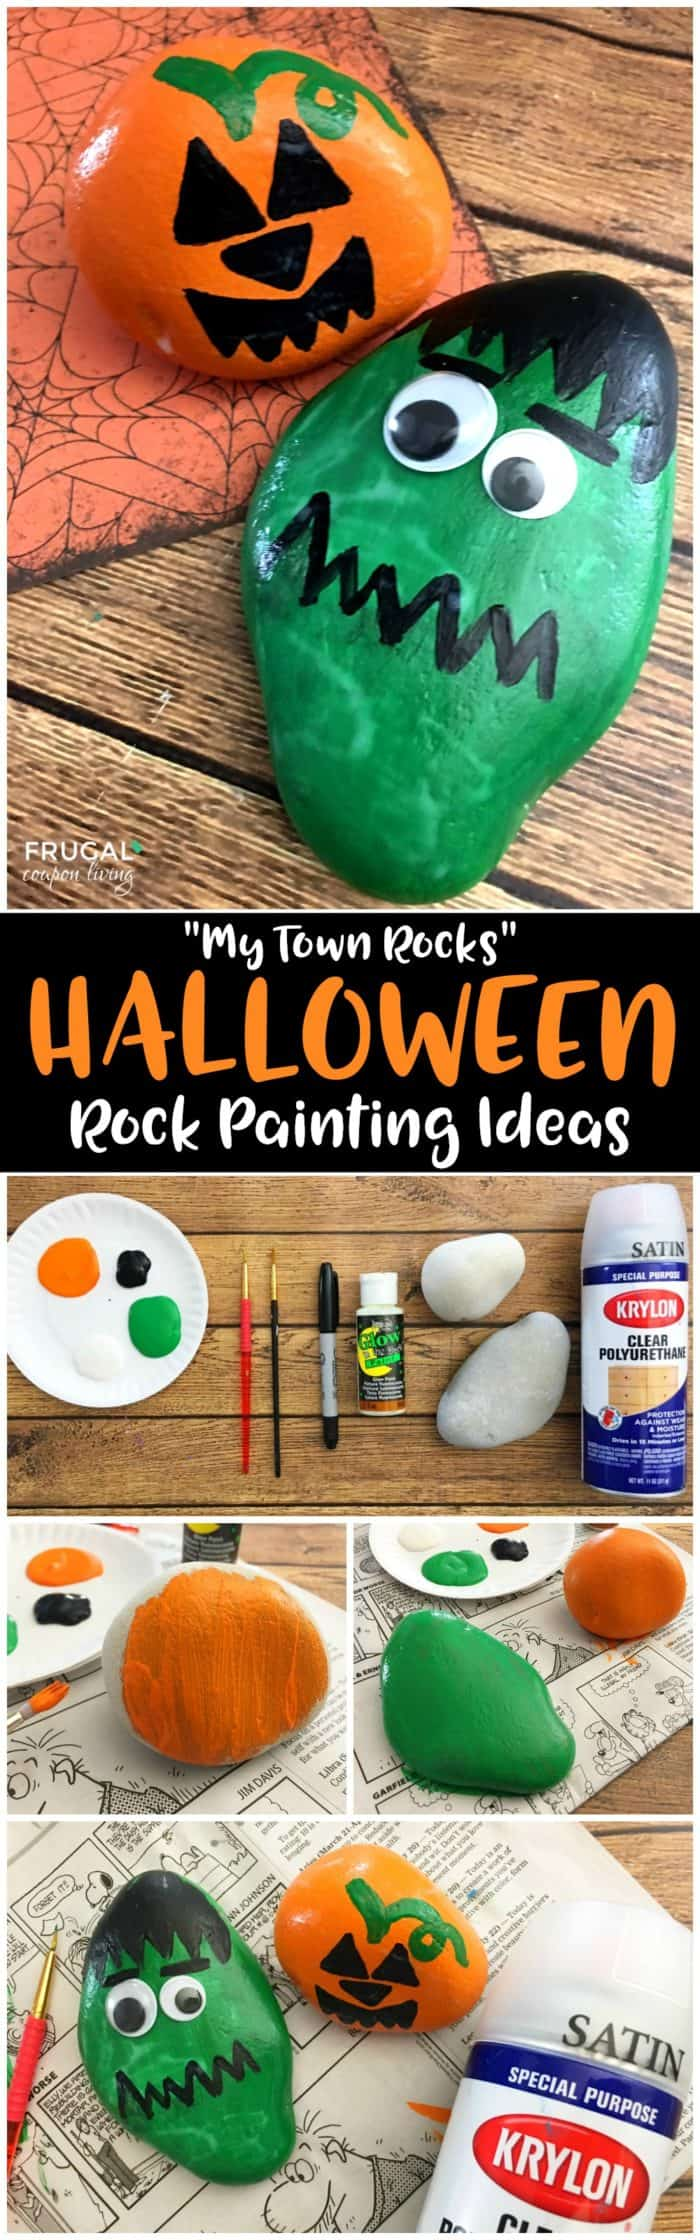 Rock Painting Ideas